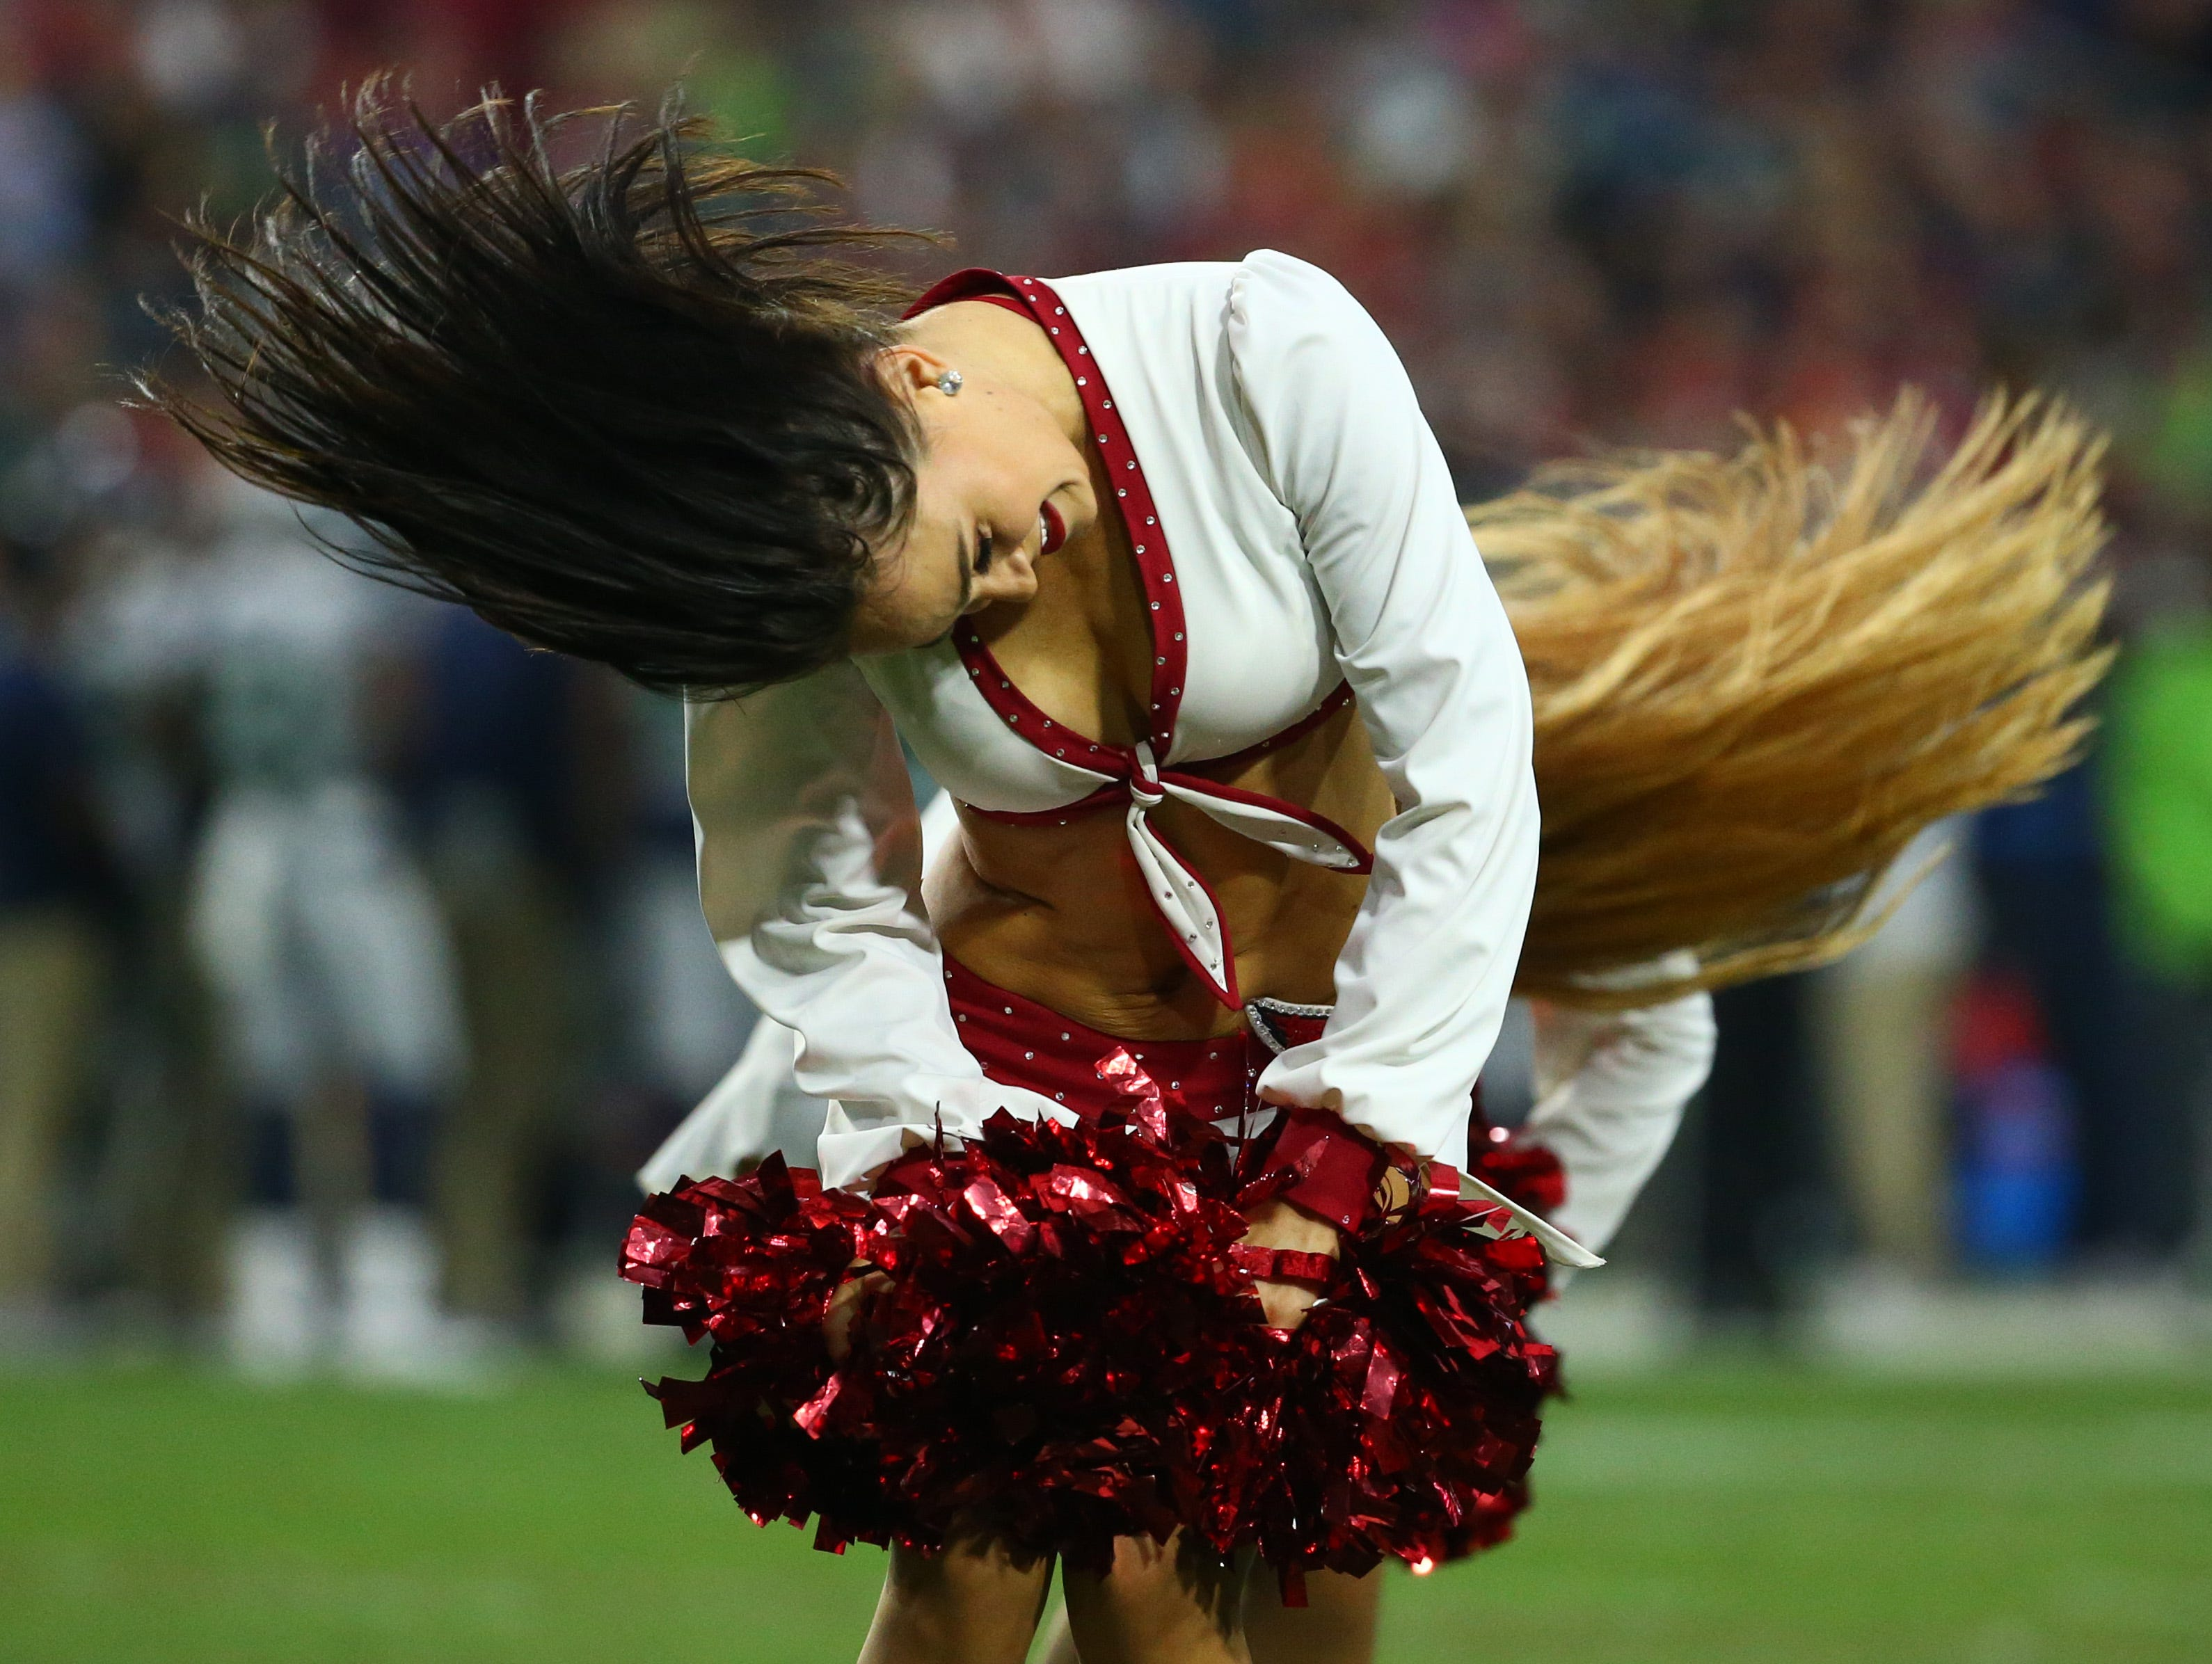 Arizona Cardinals cheerleaders perform in the first half at State Farm Stadium in Glendale, Ariz. on Sept. 30, 2018.